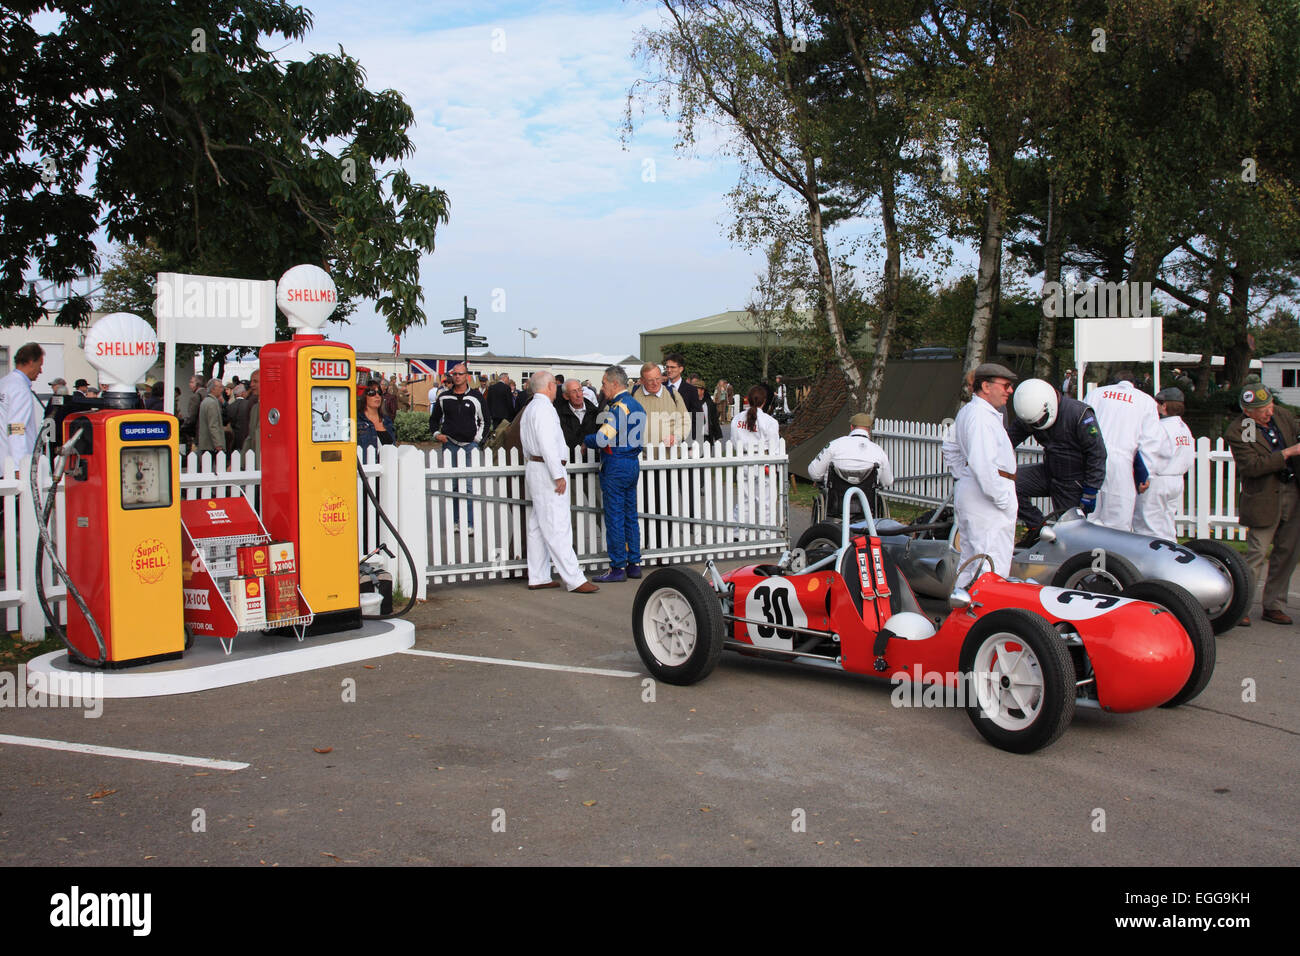 David Lecoq's red 1955 Petty-Norton in the assembly area / Goodwood Revival / Goodwood / UK - Stock Image